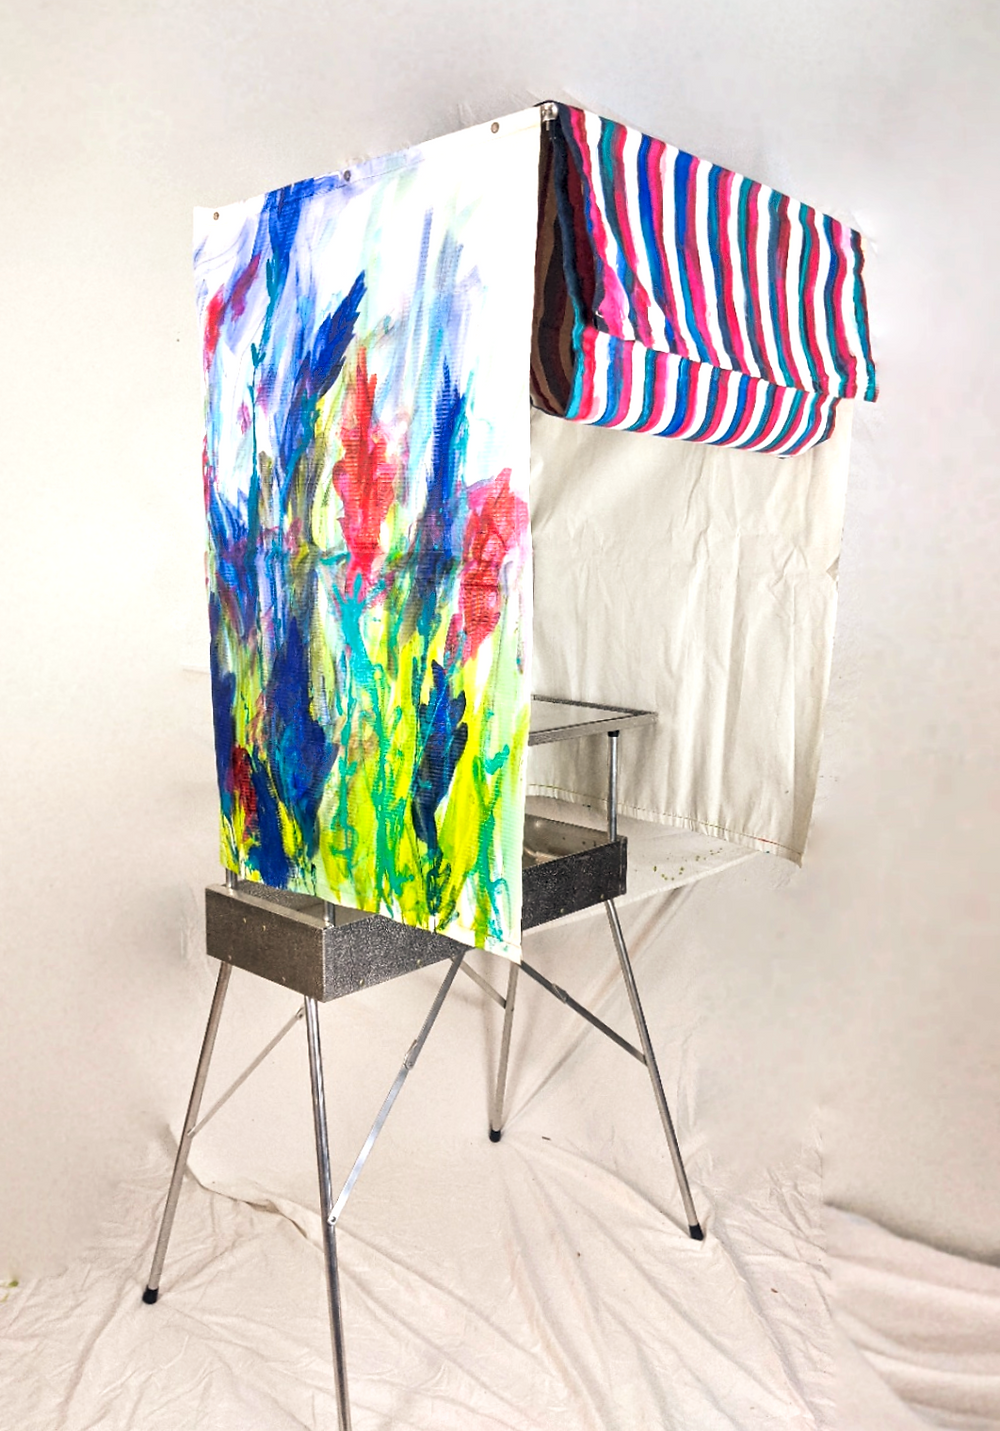 An antique voting booth with red, white, and blue striped curtains and abstract flowers painted on the sides.